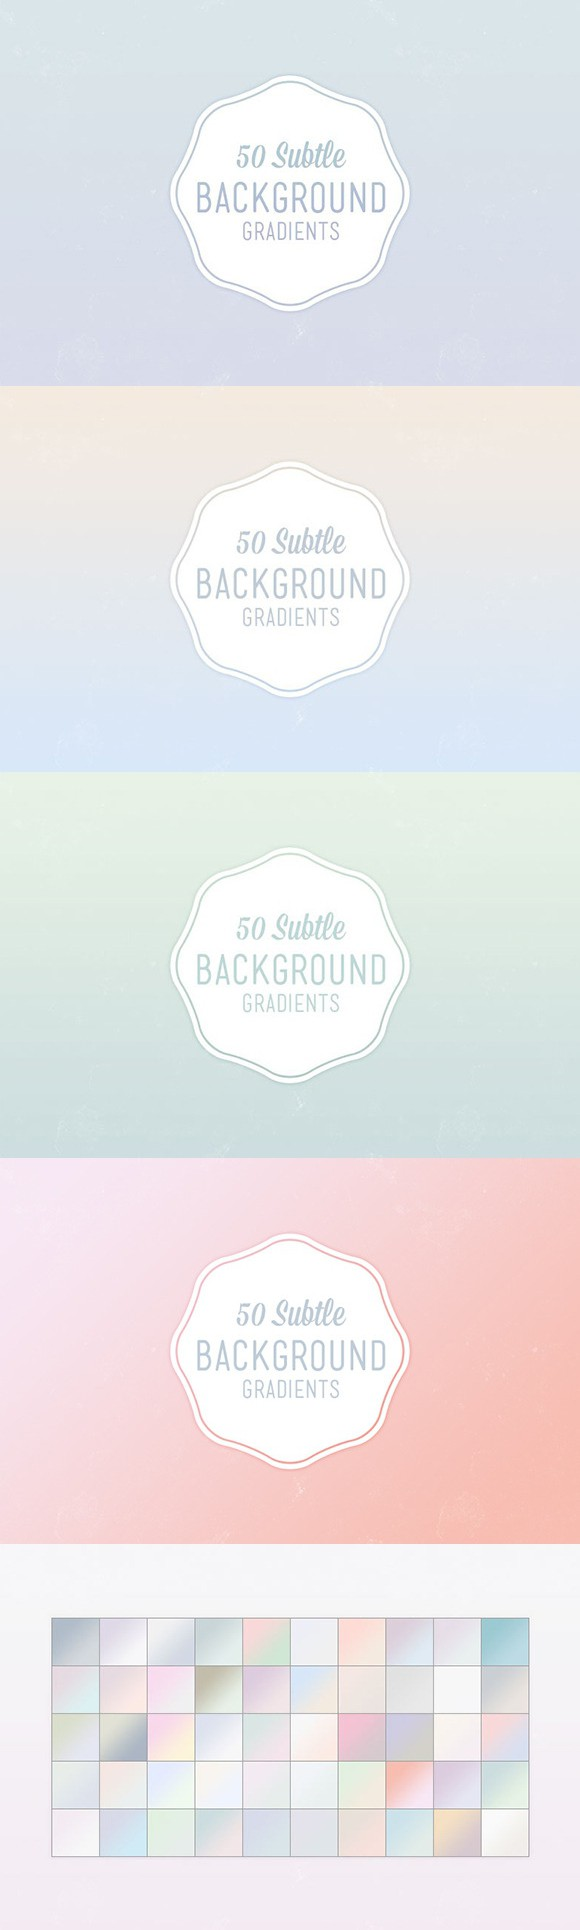 50 Subtle Background Gradients  Gradients  $8 00 | Gradients